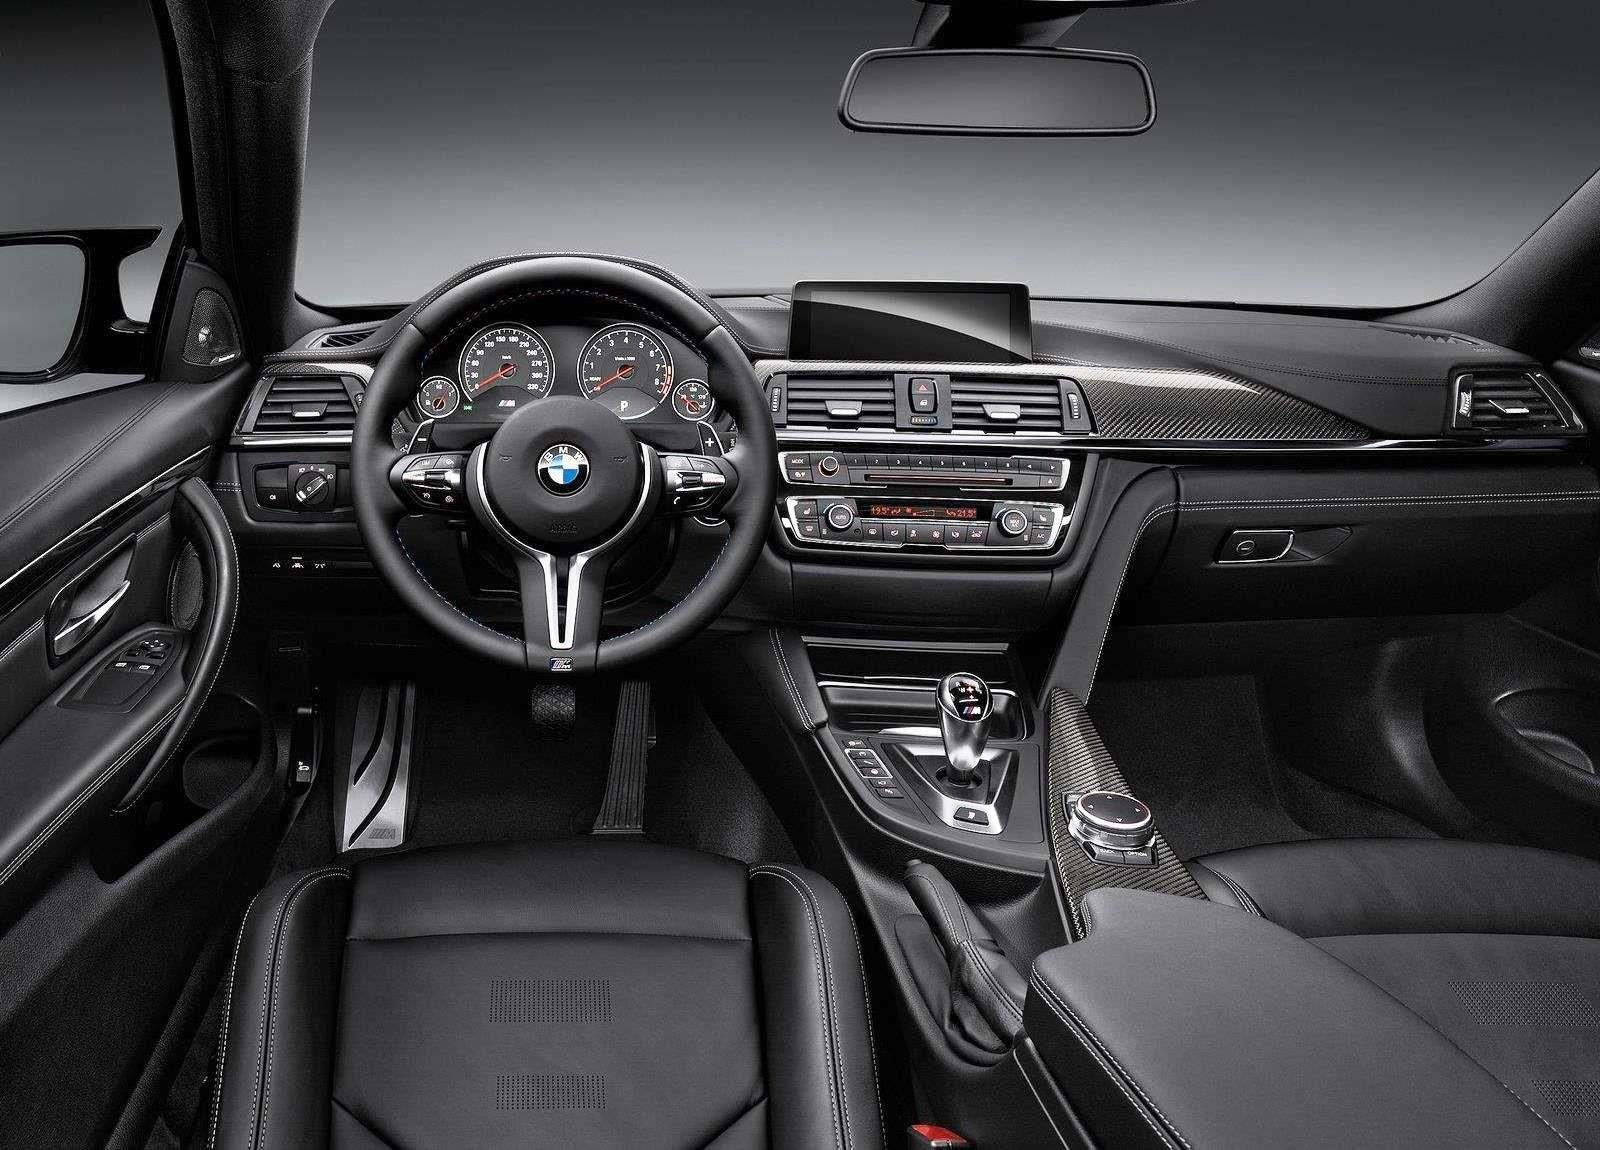 2015 Bmw M4 Coupe Interior Dash View Http Carwallpaper Org 2015 Bmw M4 Coupe Interior Dash View Bmw M4 Bmw M4 Coupe 2015 Bmw M4